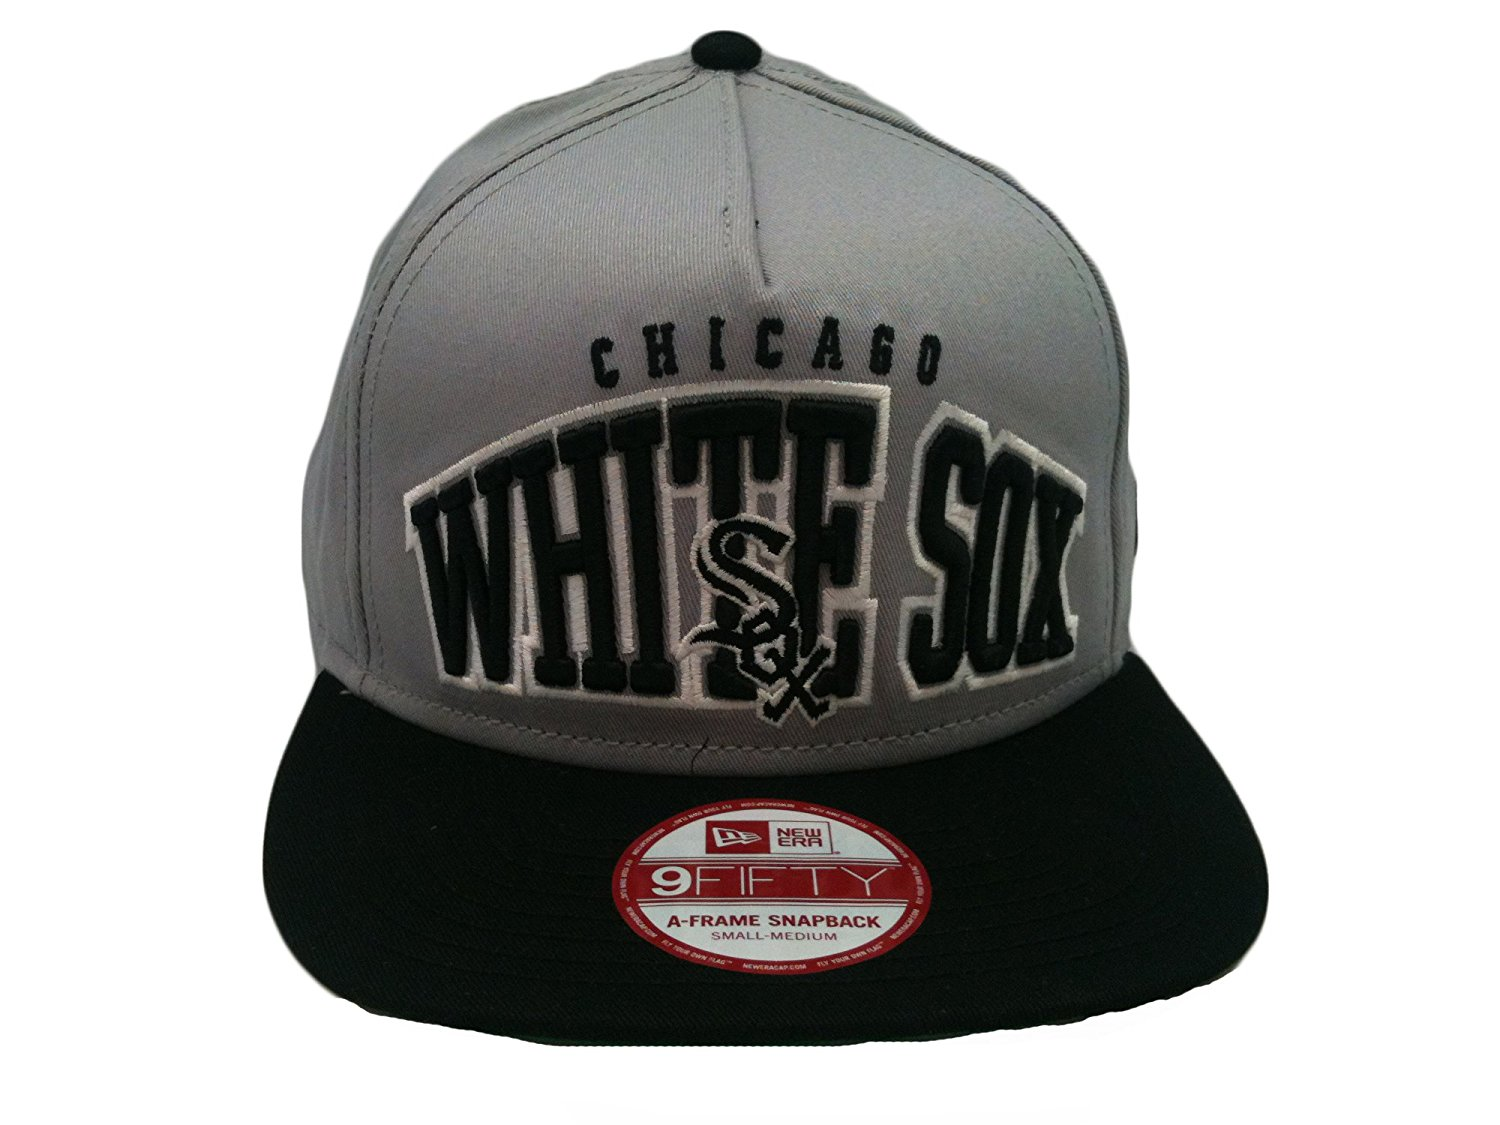 fee033c7e2b Get Quotations · Chicago White Sox MLB Hightailer Flat Bill Snapback Hat